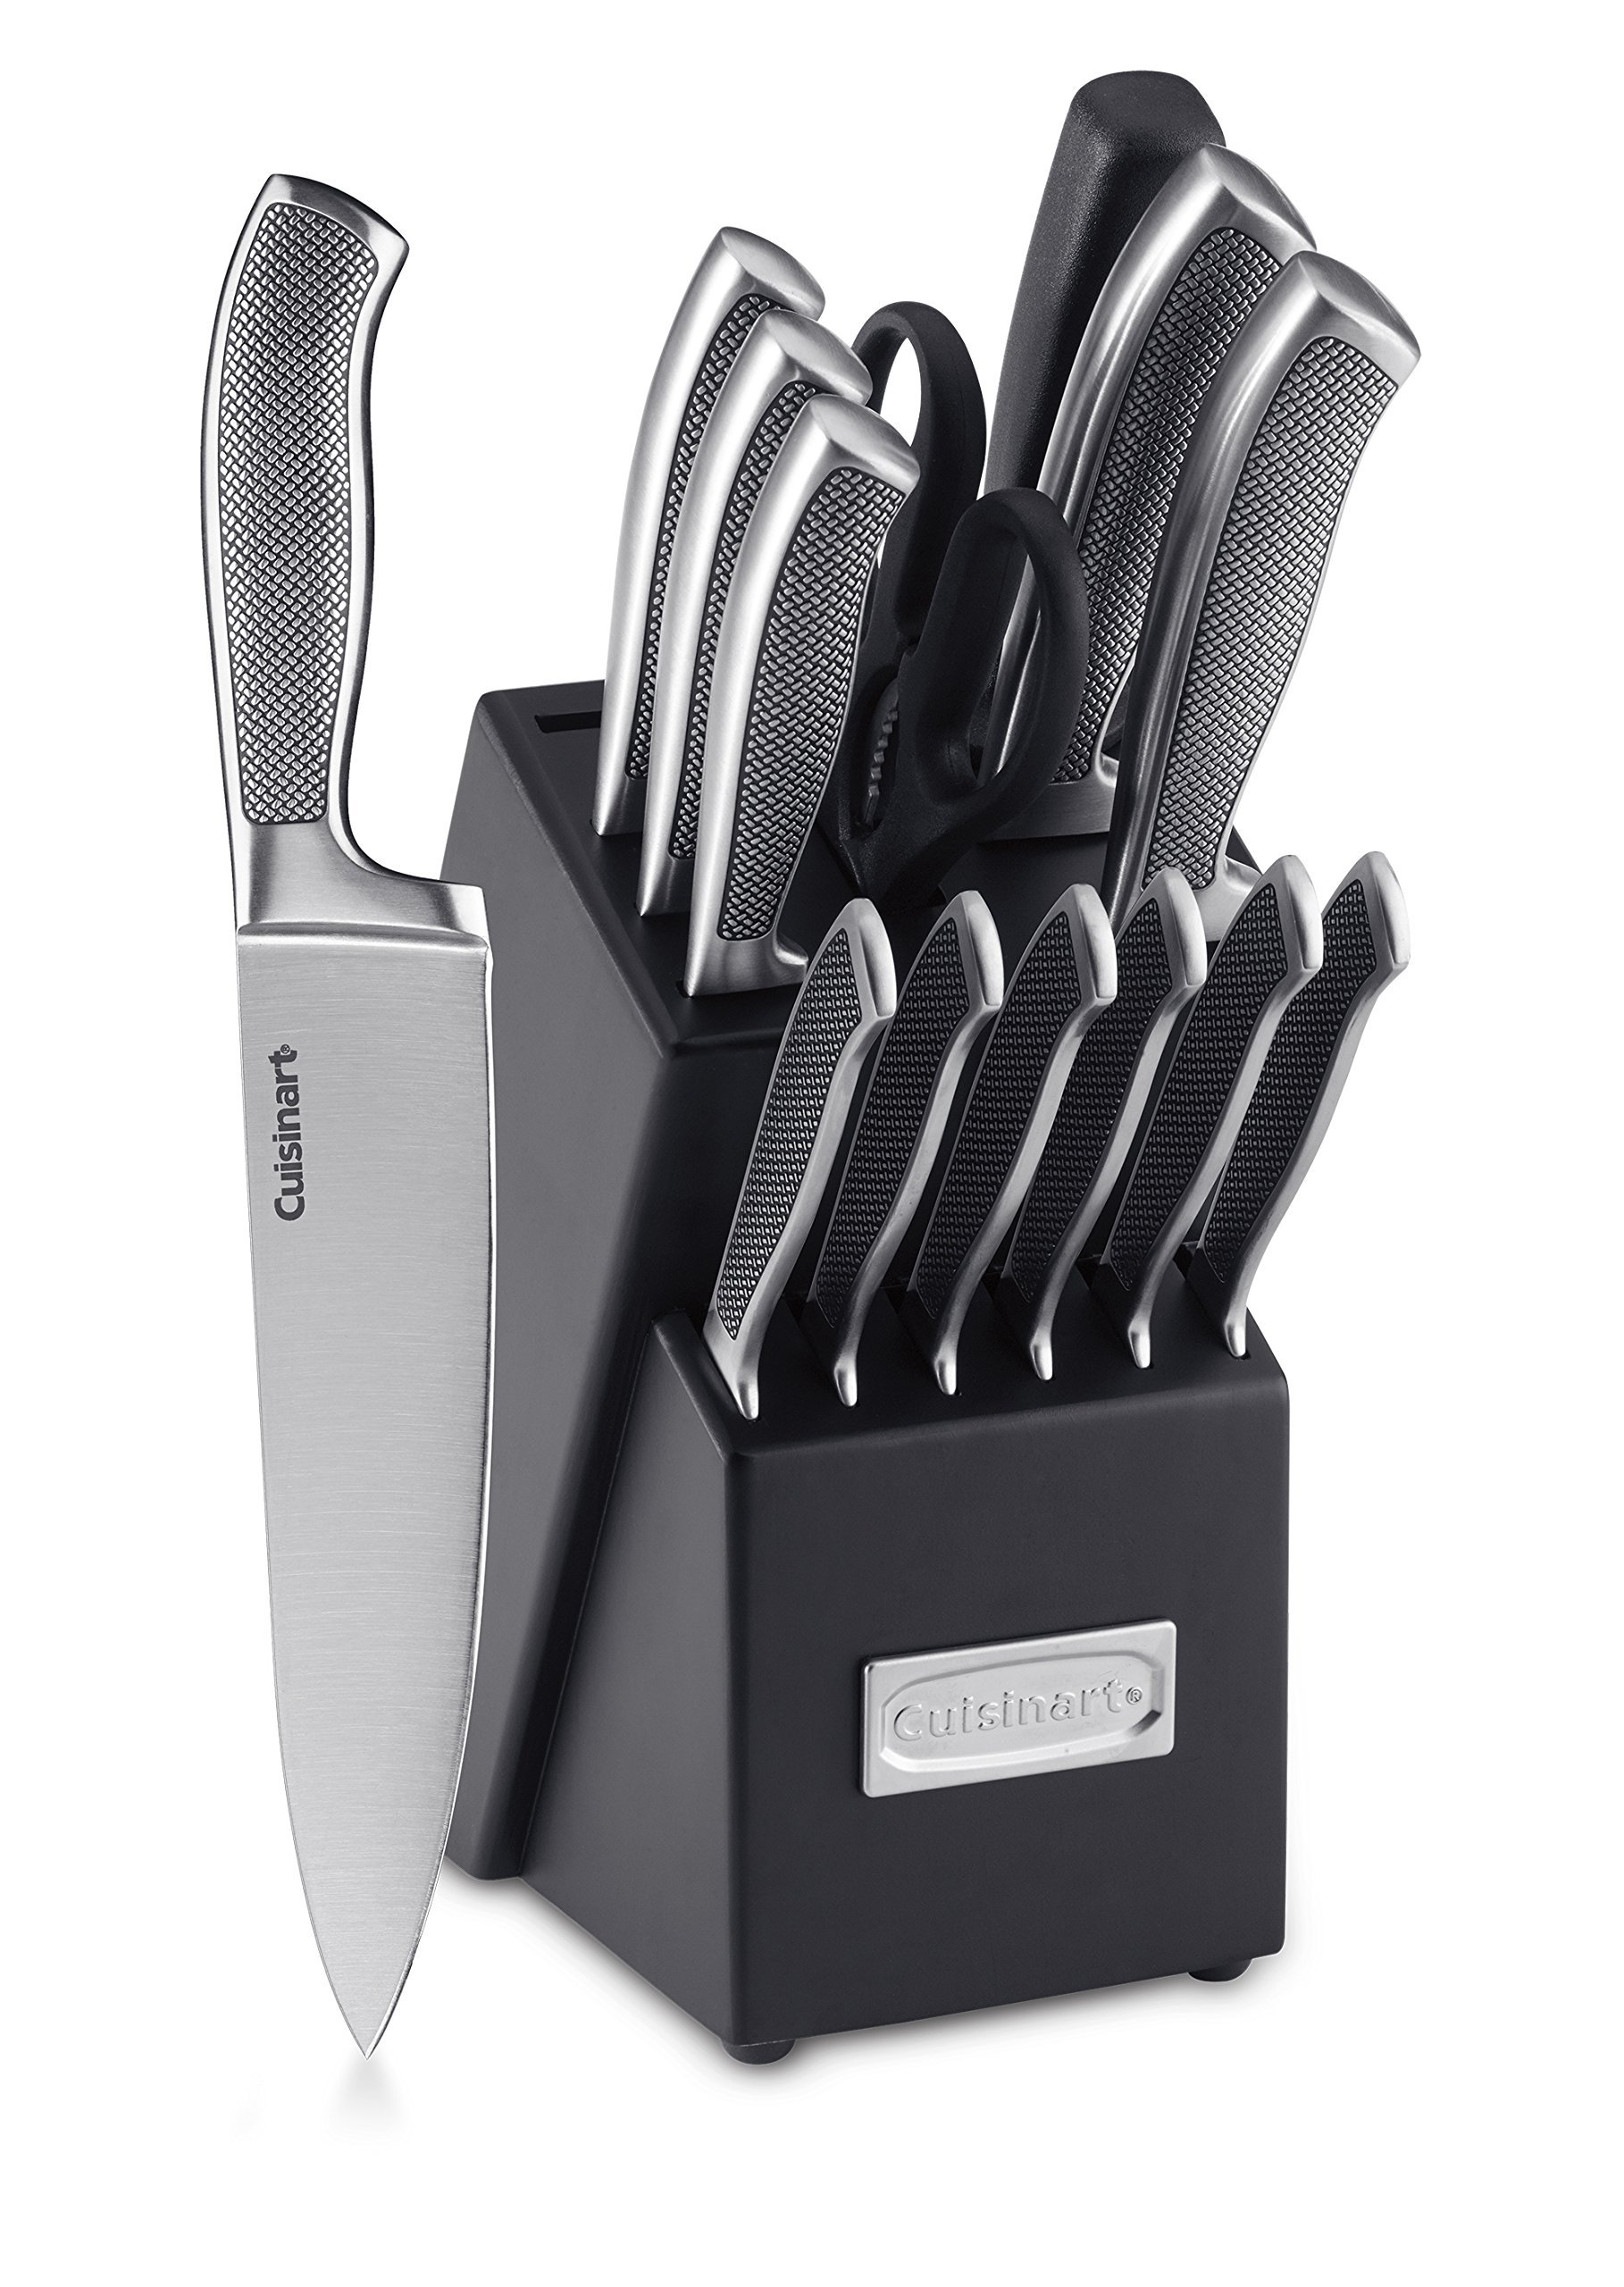 Cuisinart C77SS-15P Graphix Collection 15-Piece Cutlery Knife Block Set, Stainless Steel by Cuisinart